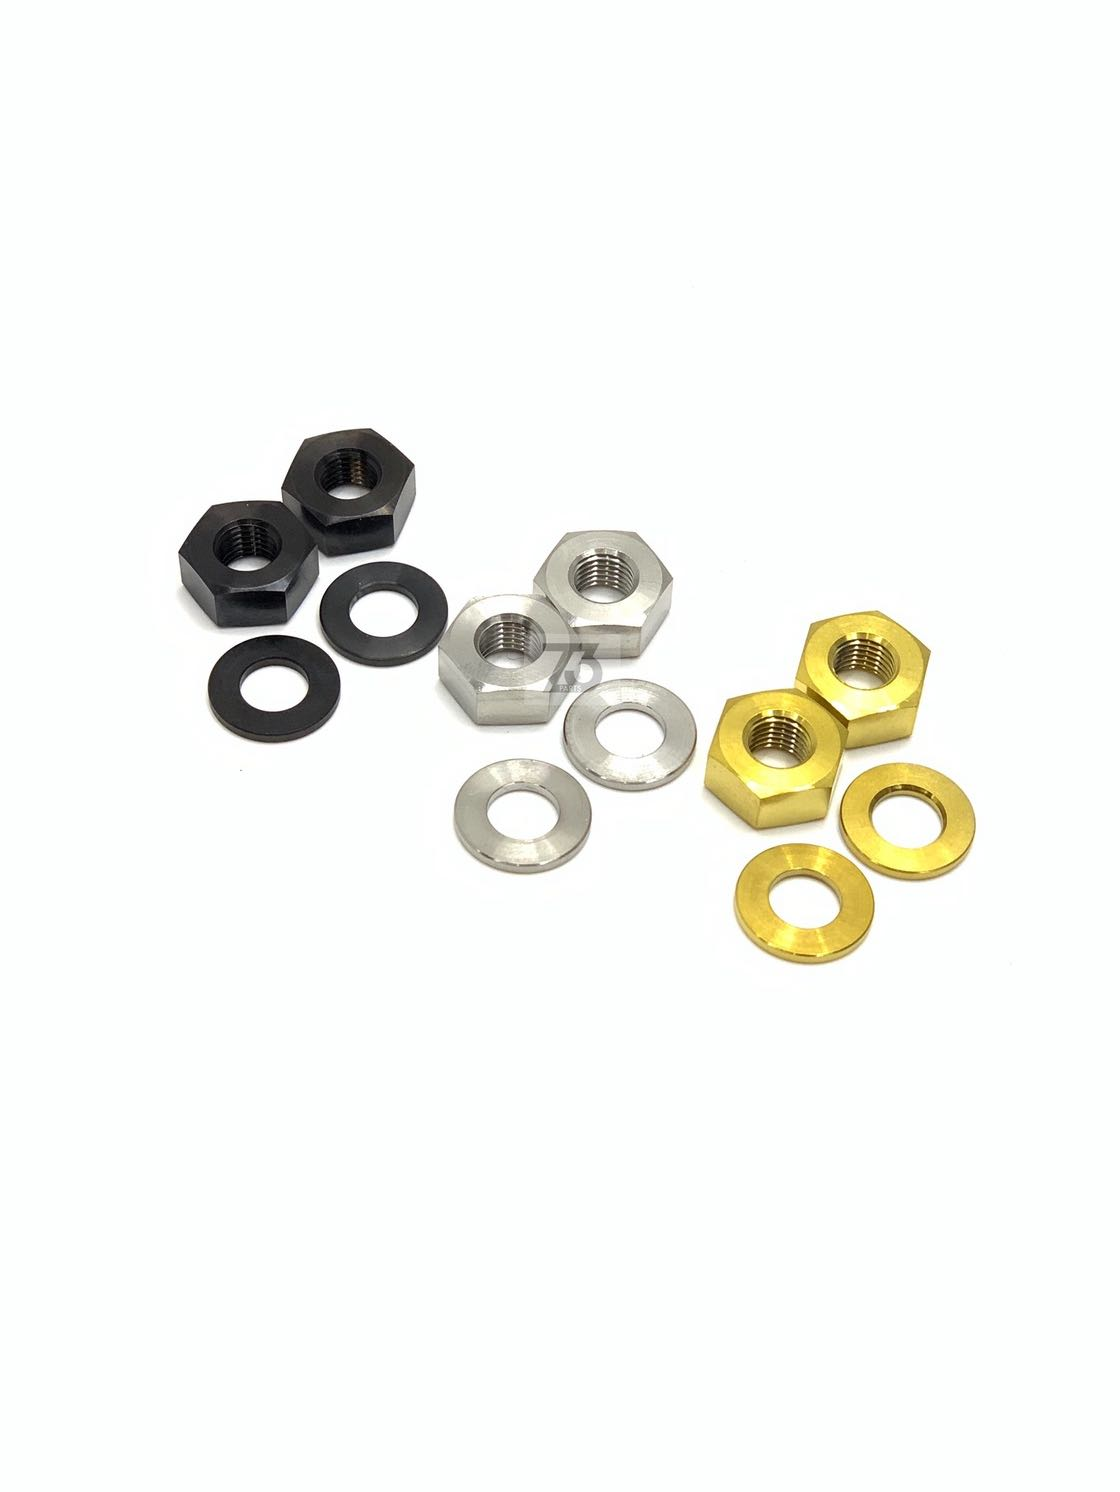 NEW! nov rear axel Titanium washer set only for nov rear axel Nuts 10